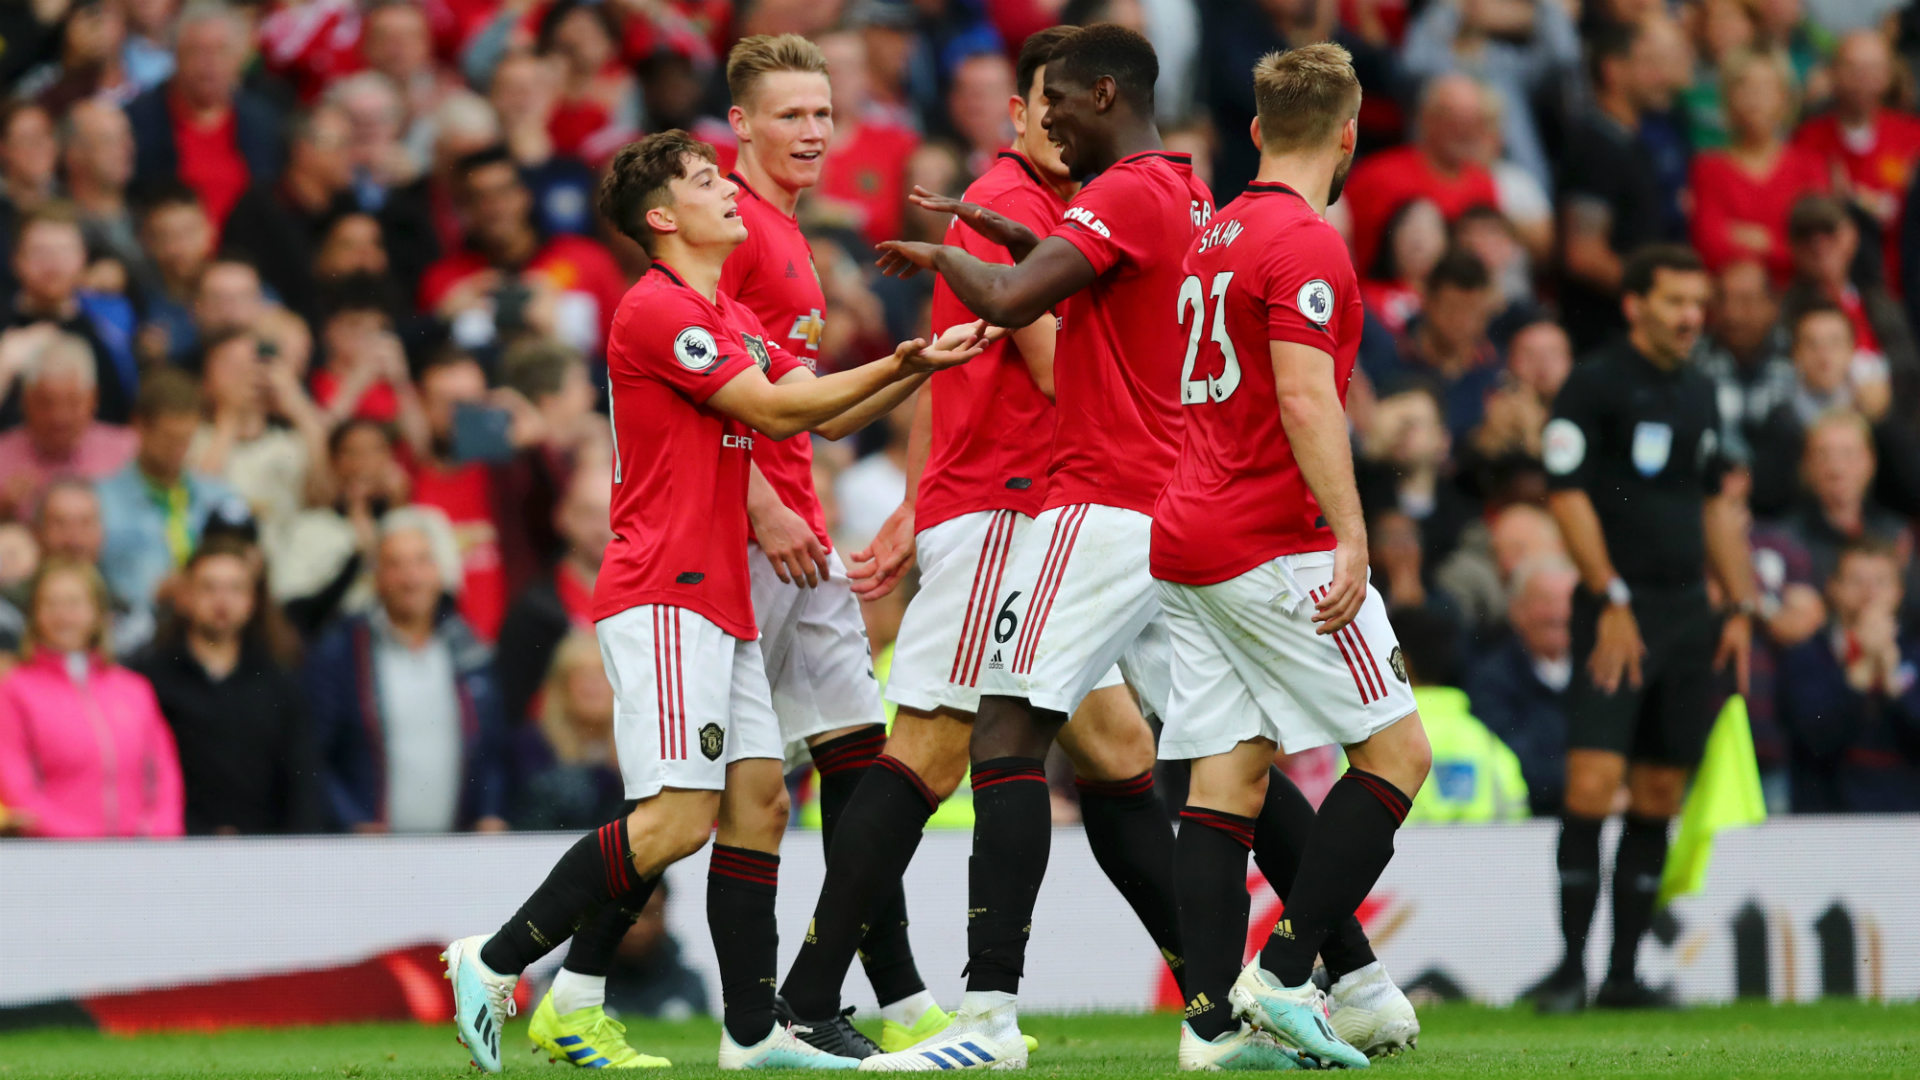 Gautam Gambhir Reacts to Manchester United's Derby Win Against City, Says, 'Manchester is Red'